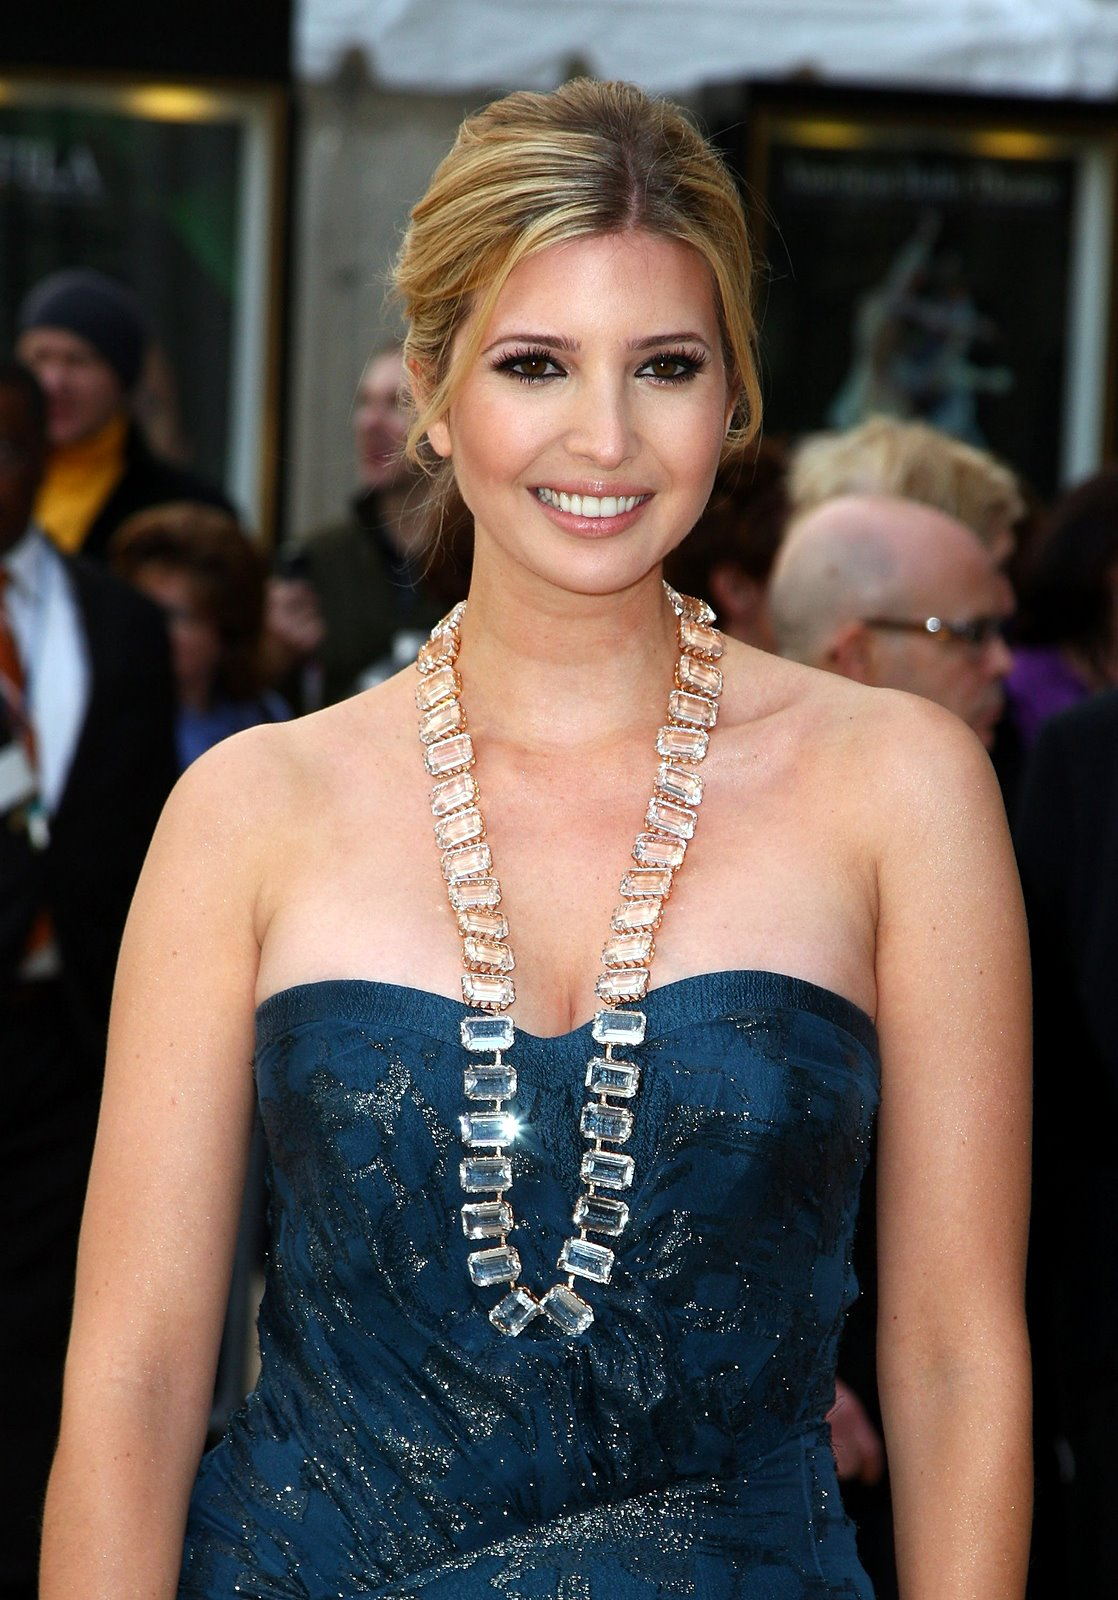 Ivanka Marie Trump | an American Businesswoman, Socialite, Heiress, and Fashion Model